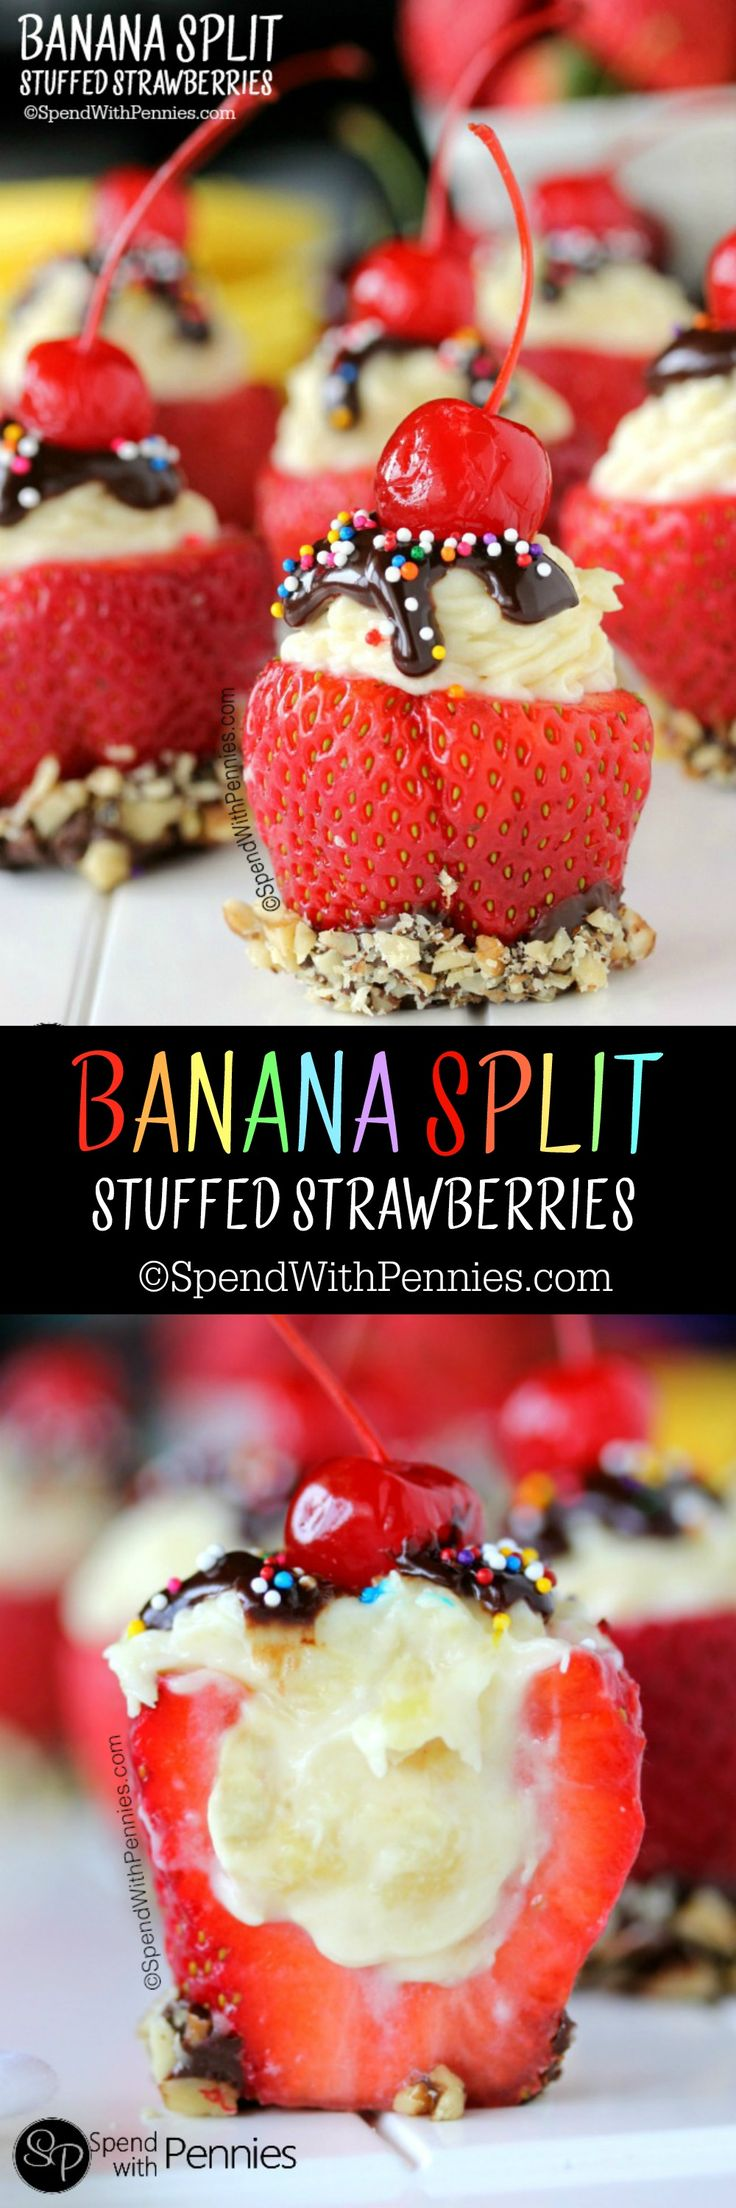 Banana Split Stuffed Strawberries!  These yummy treats are easy to make and perfect for summer!  No baking required!